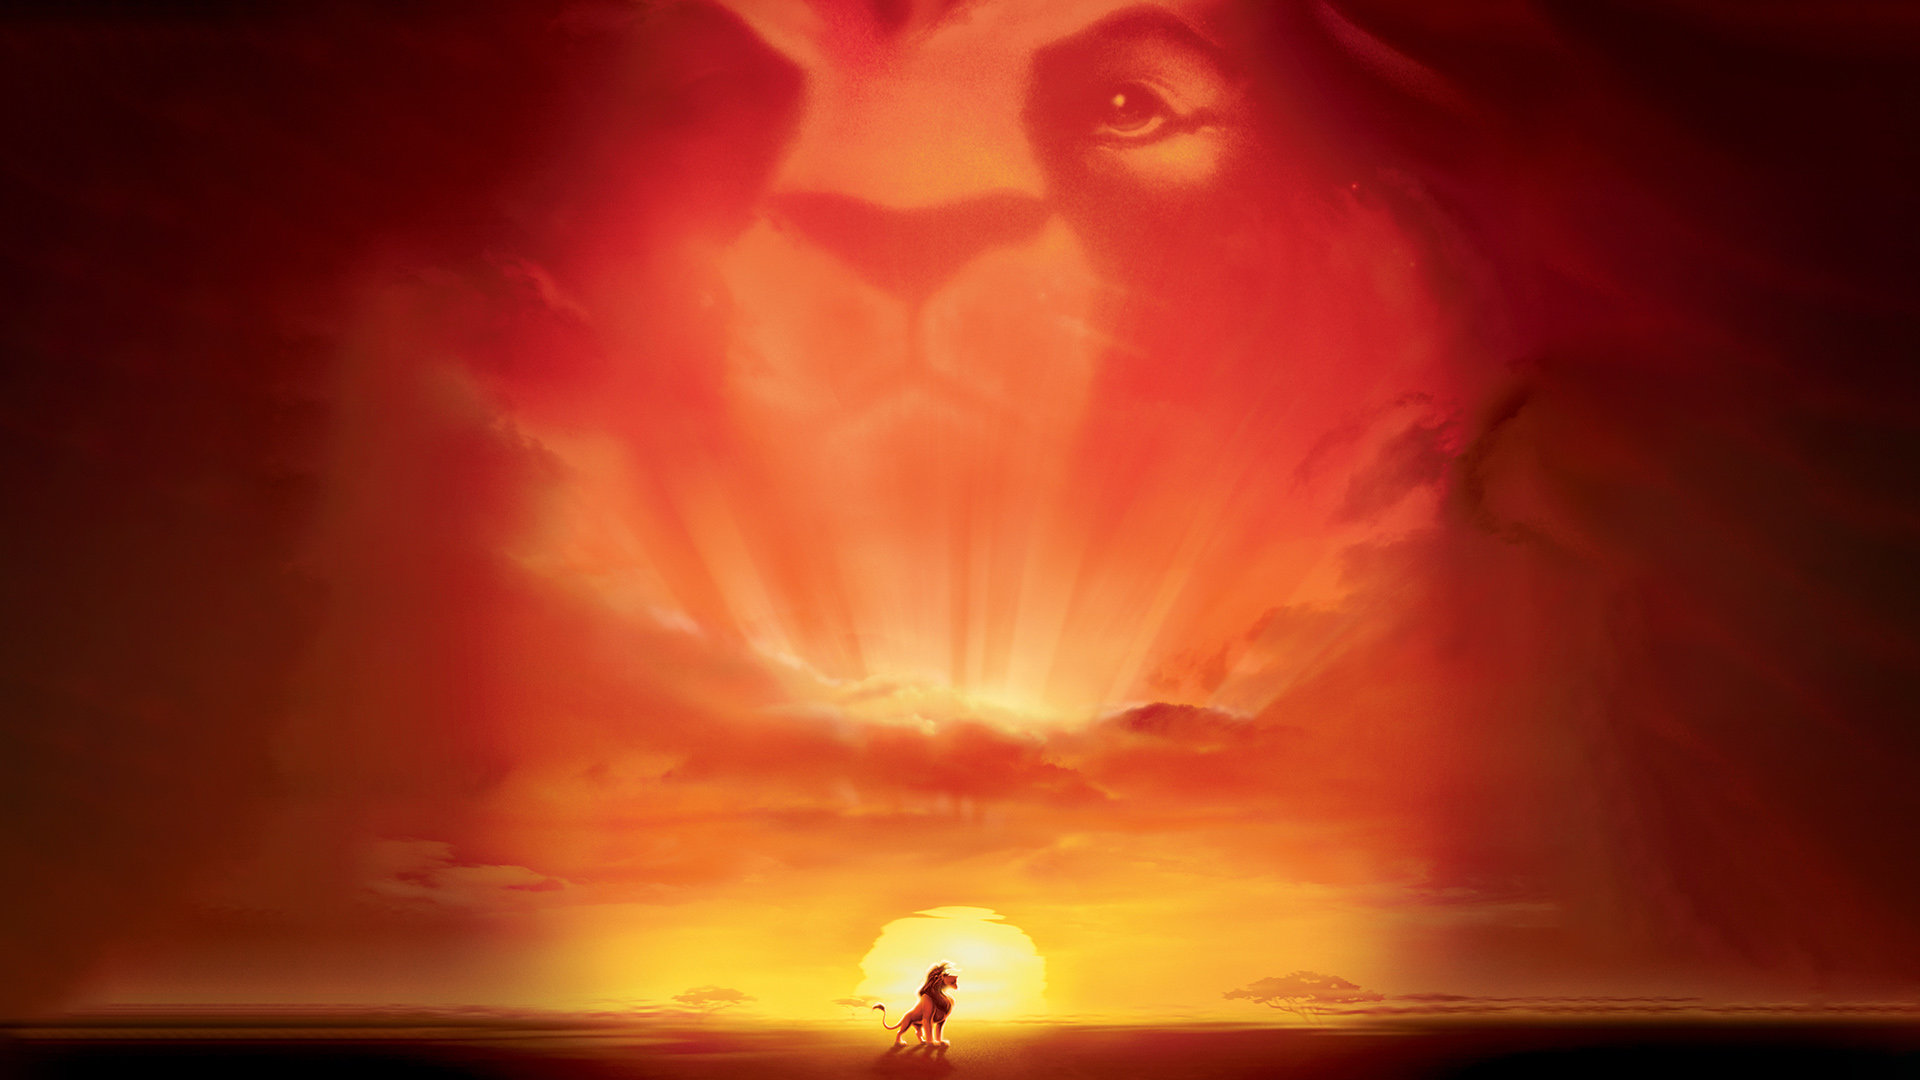 Free Download The Lion King Wallpaper Id 271253 Full Hd For Pc